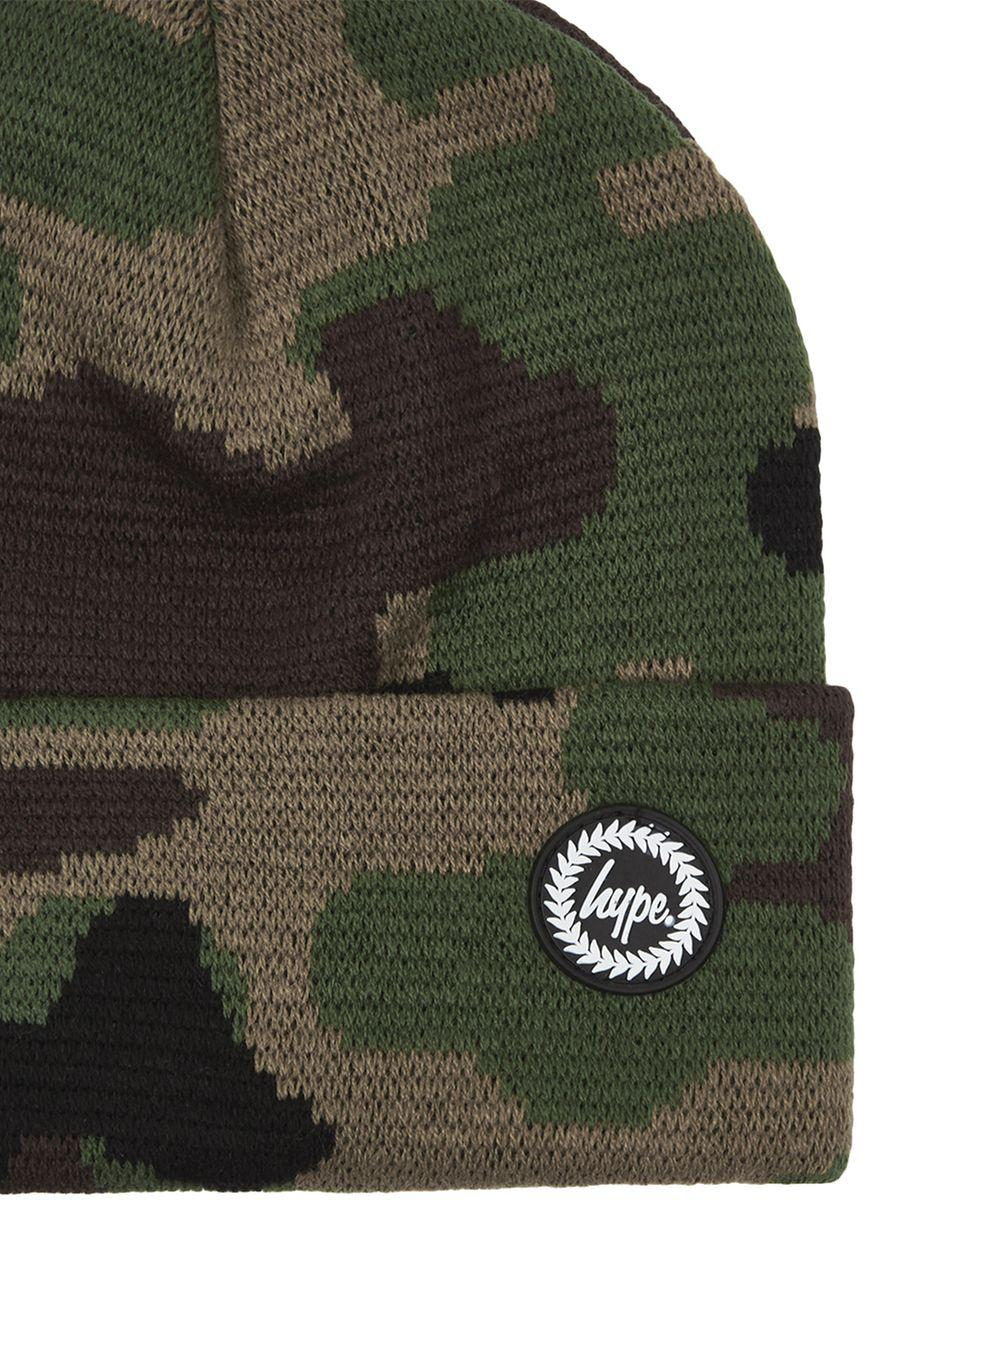 ea7f3b46dc8 Hype Camouflage Beanie in Green for Men - Lyst